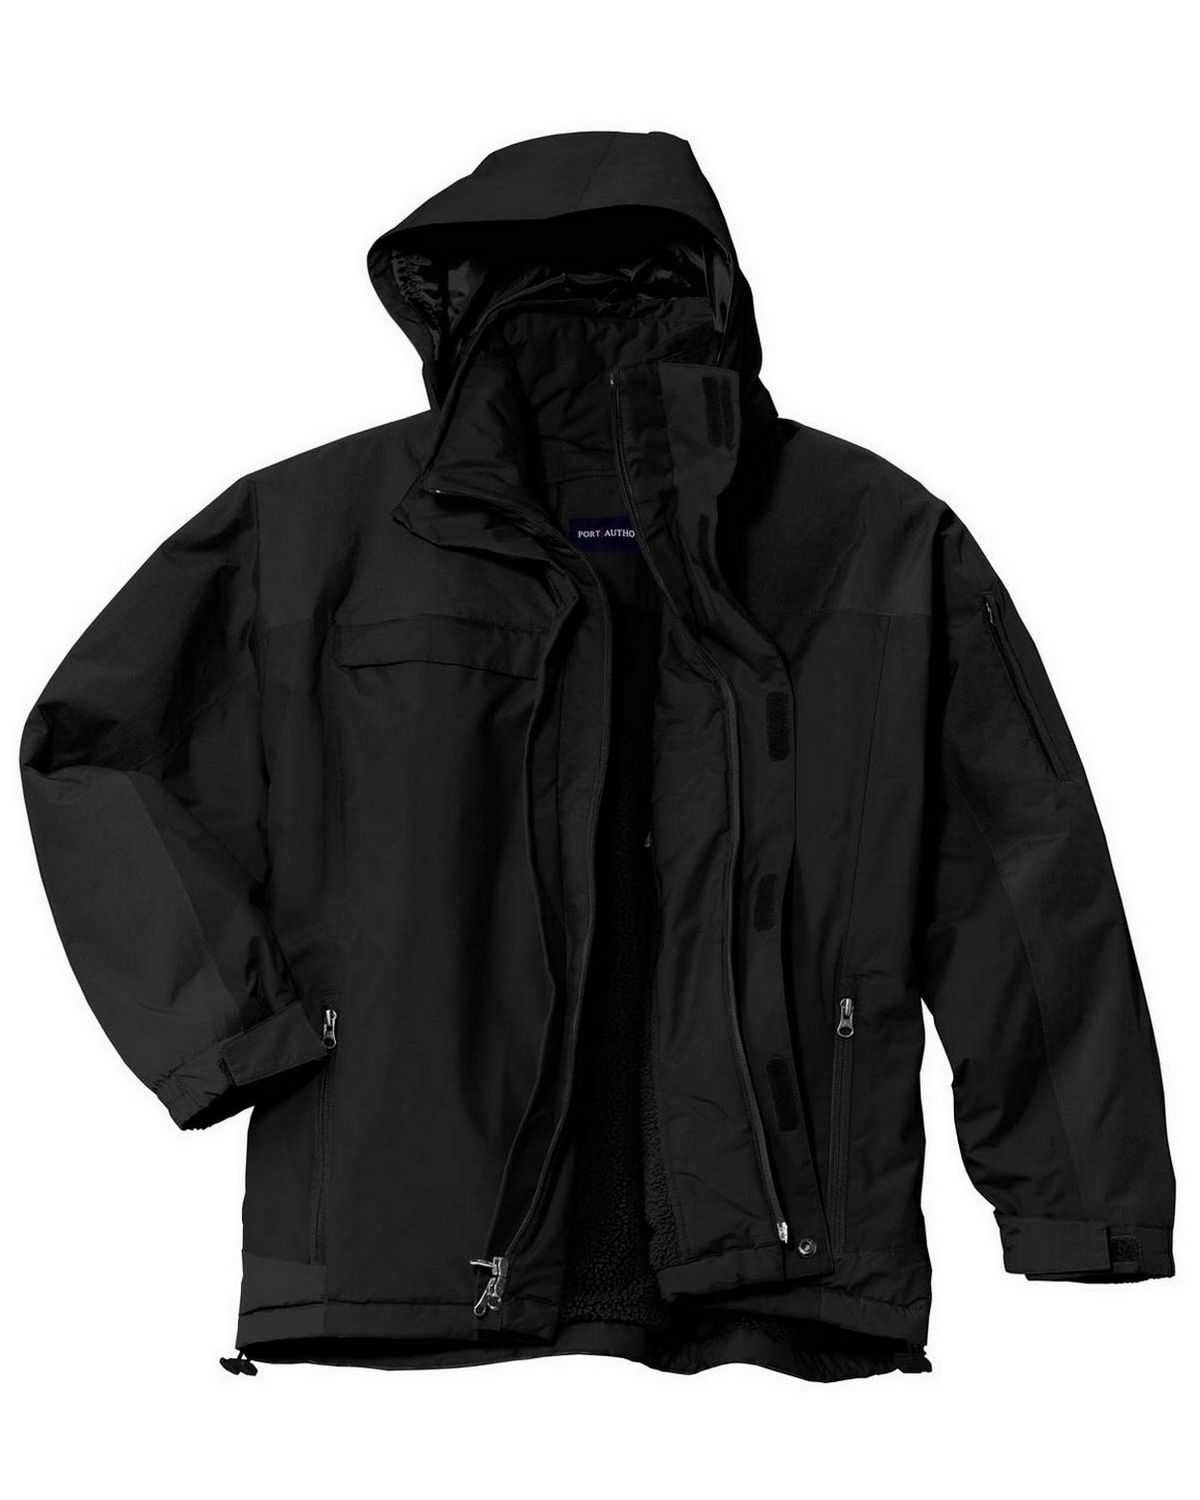 Port Authority J792 Nootka Jacket - Graphite/Black - L J792